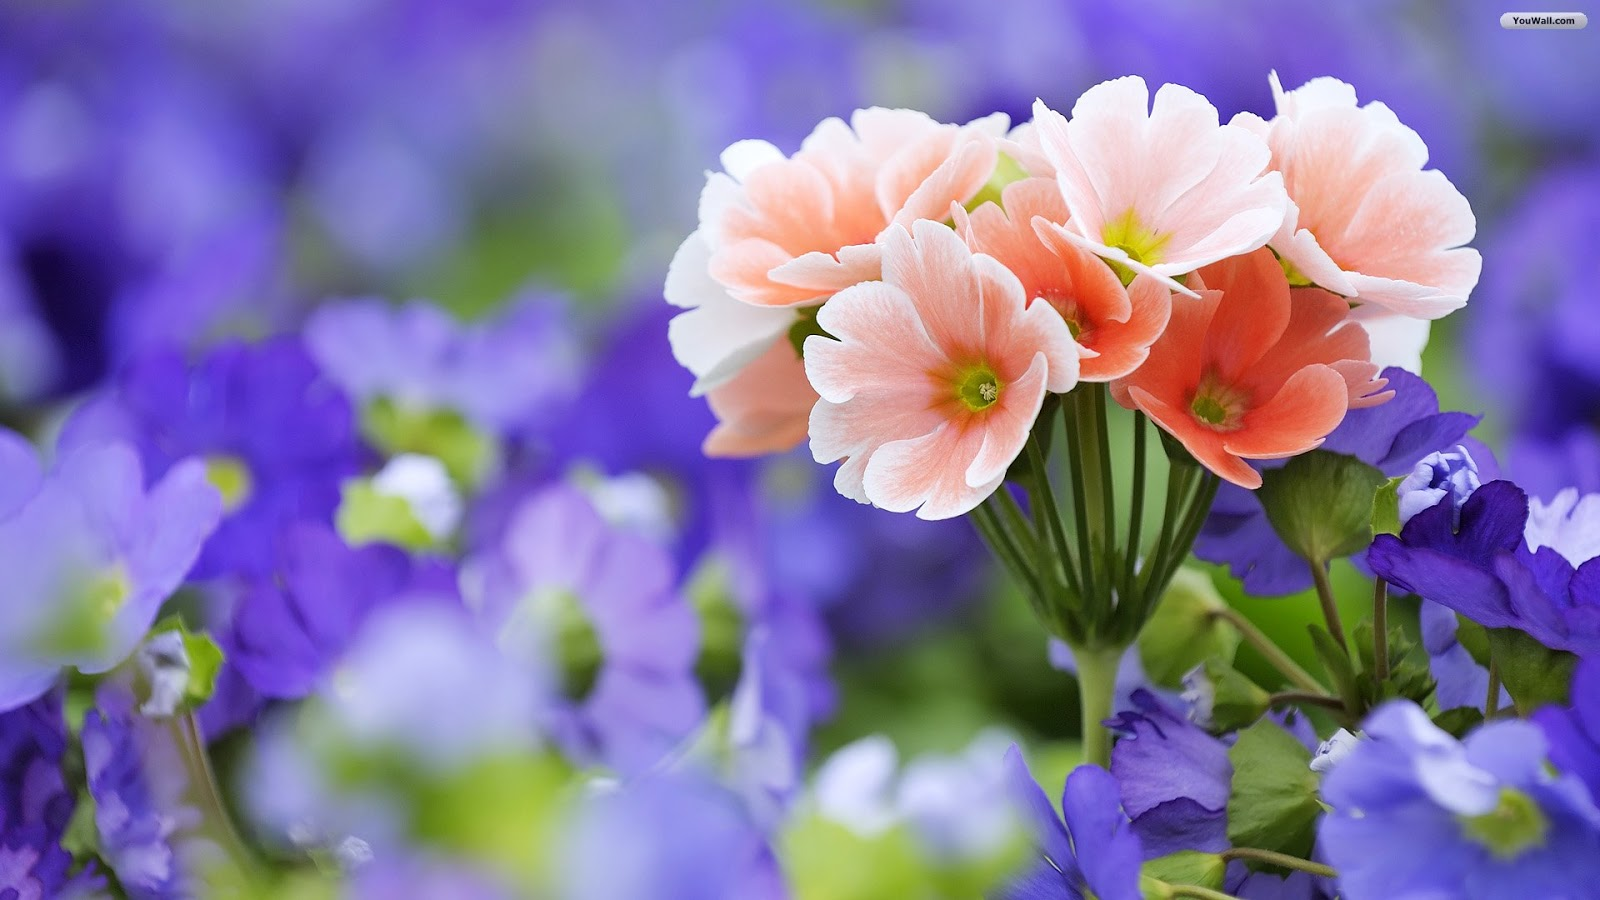 flowers for flower lovers Desktop Beautiful Flowers HD Wallpapers 1600x900